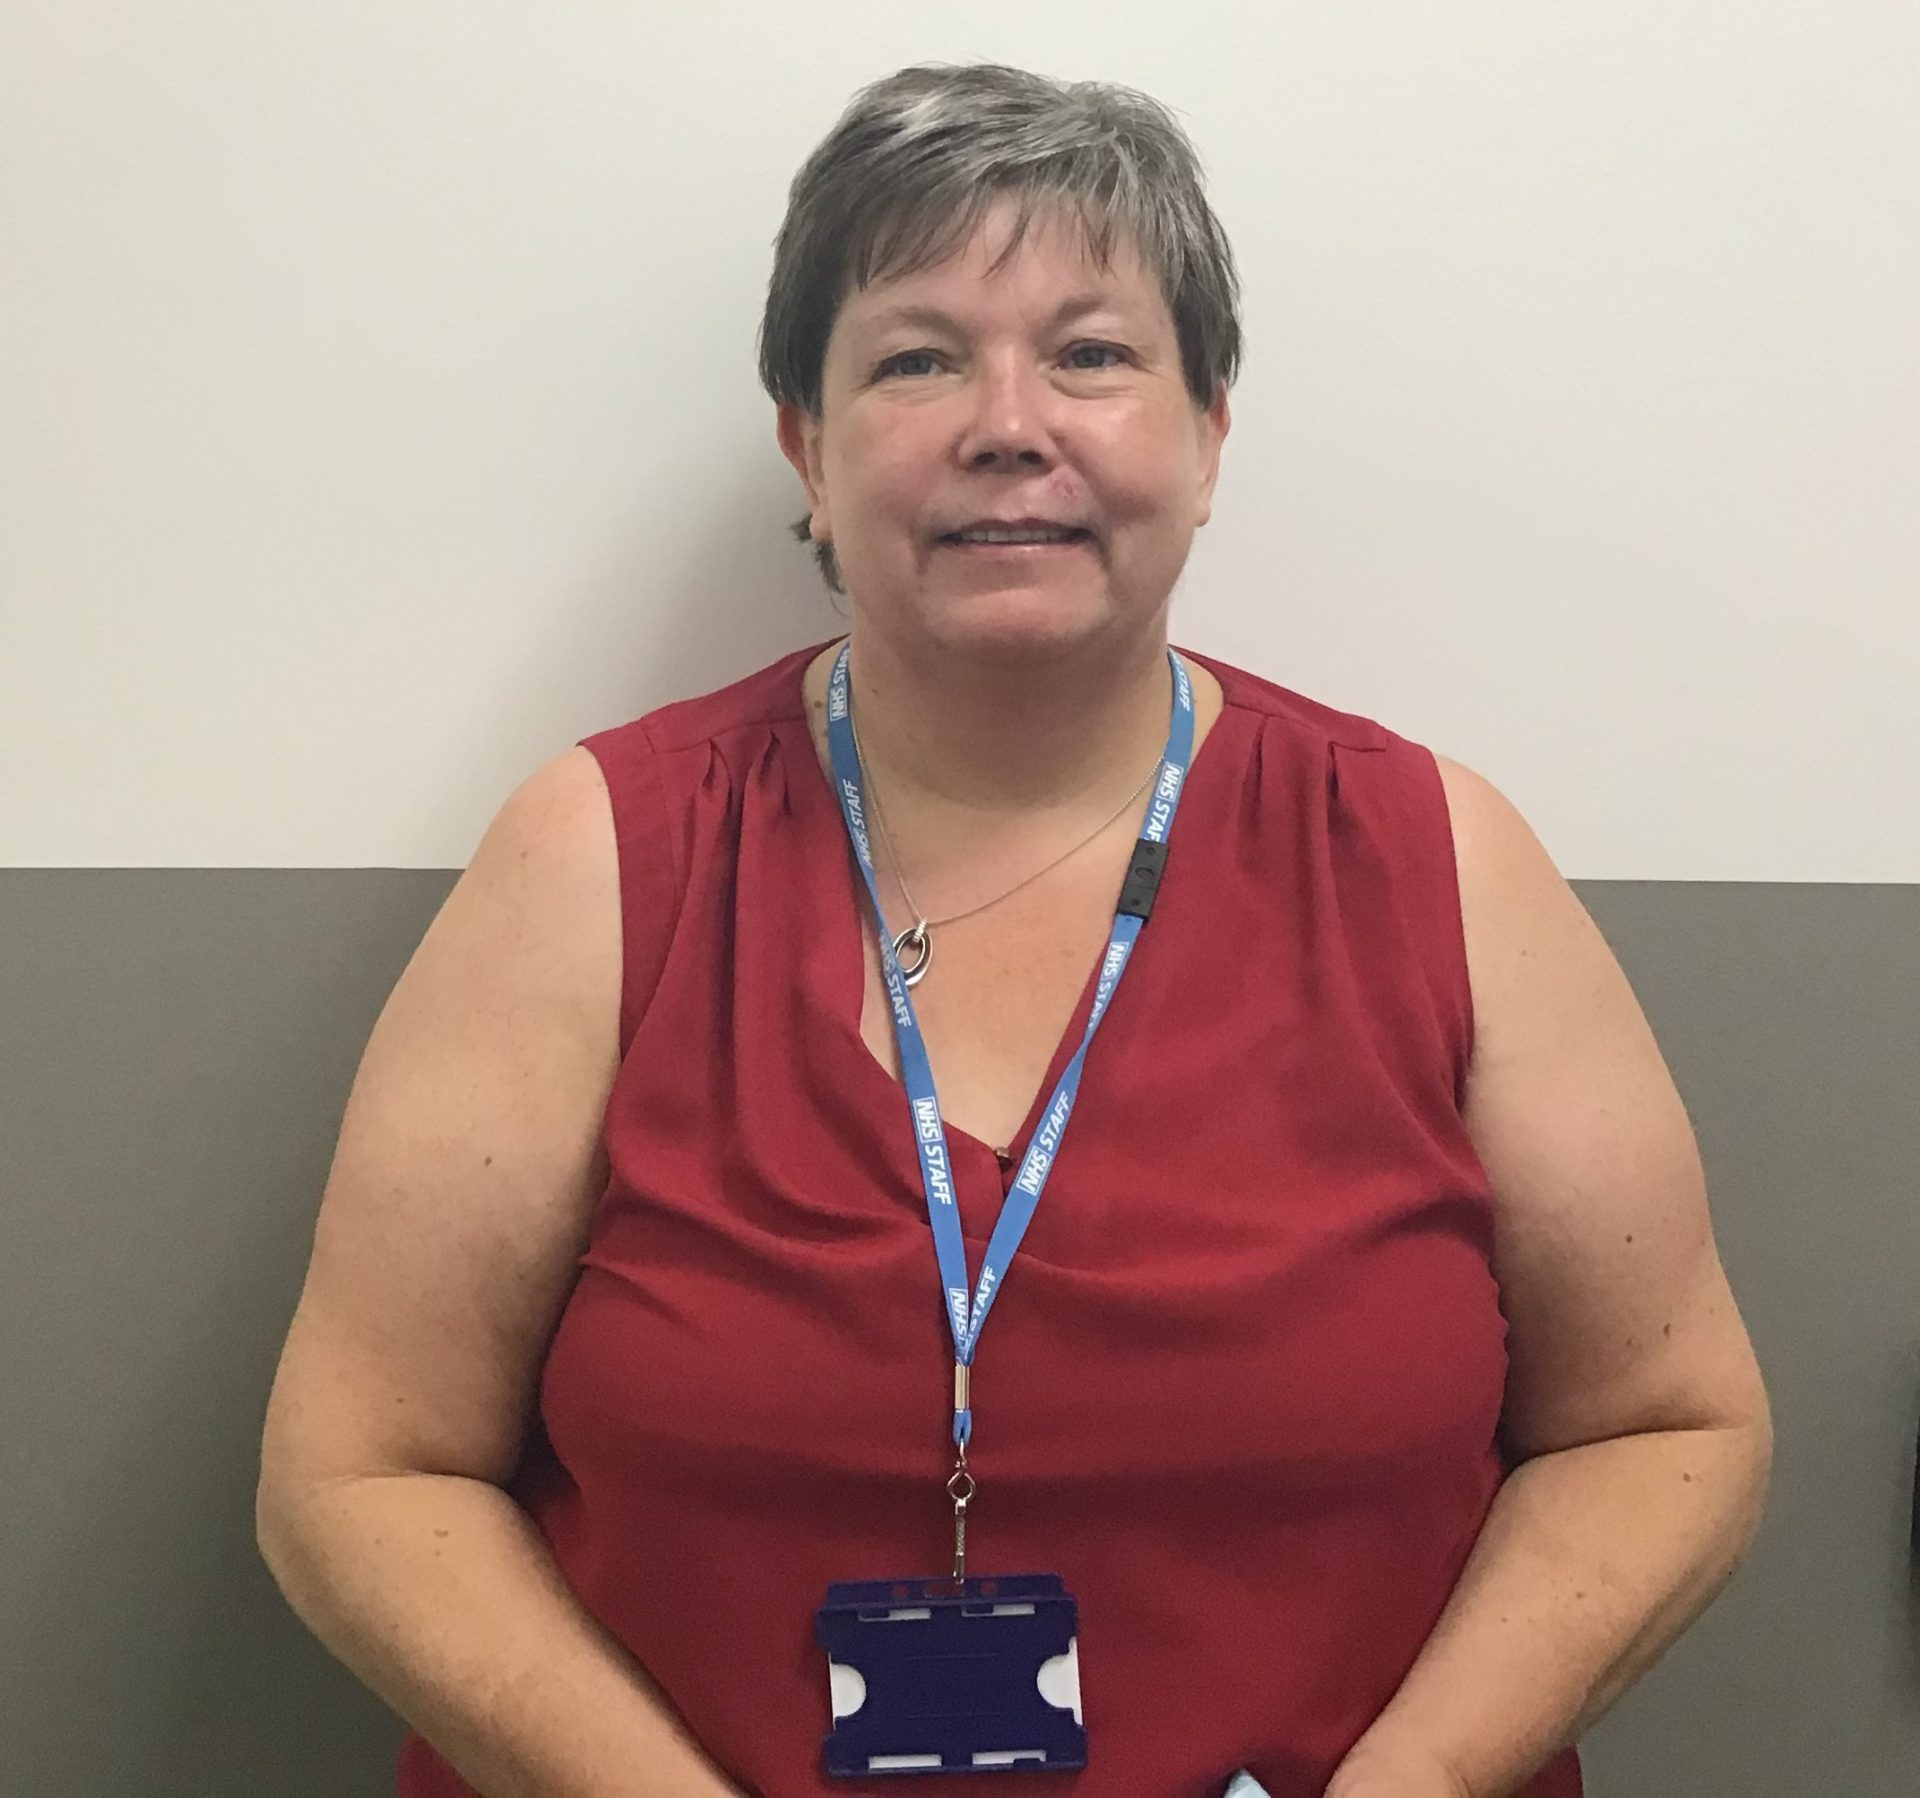 Maureen Stenhouse, HR Advisor talks about caring for her mum, becoming co-chair for our Carers Staff Network and the vital support it offers people juggling caring and working.